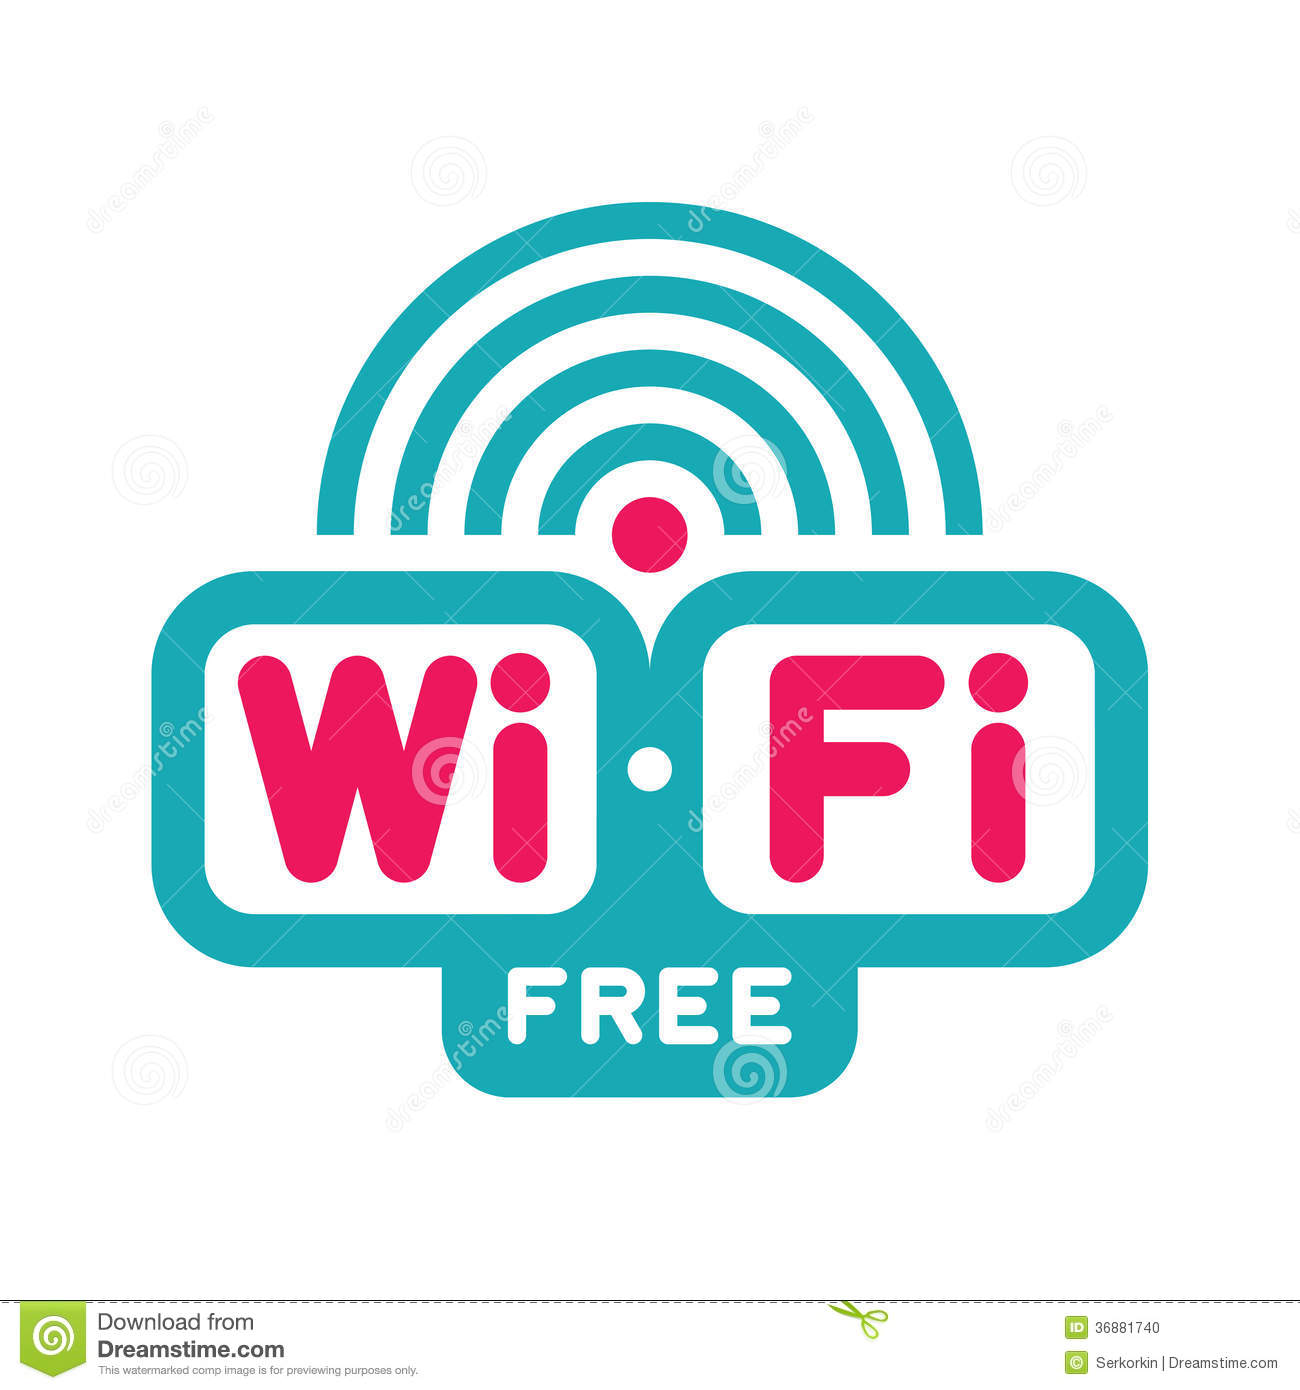 Wi-Fi Free Zone - Vector Logo Sign Stock Photo - Image: 36881740